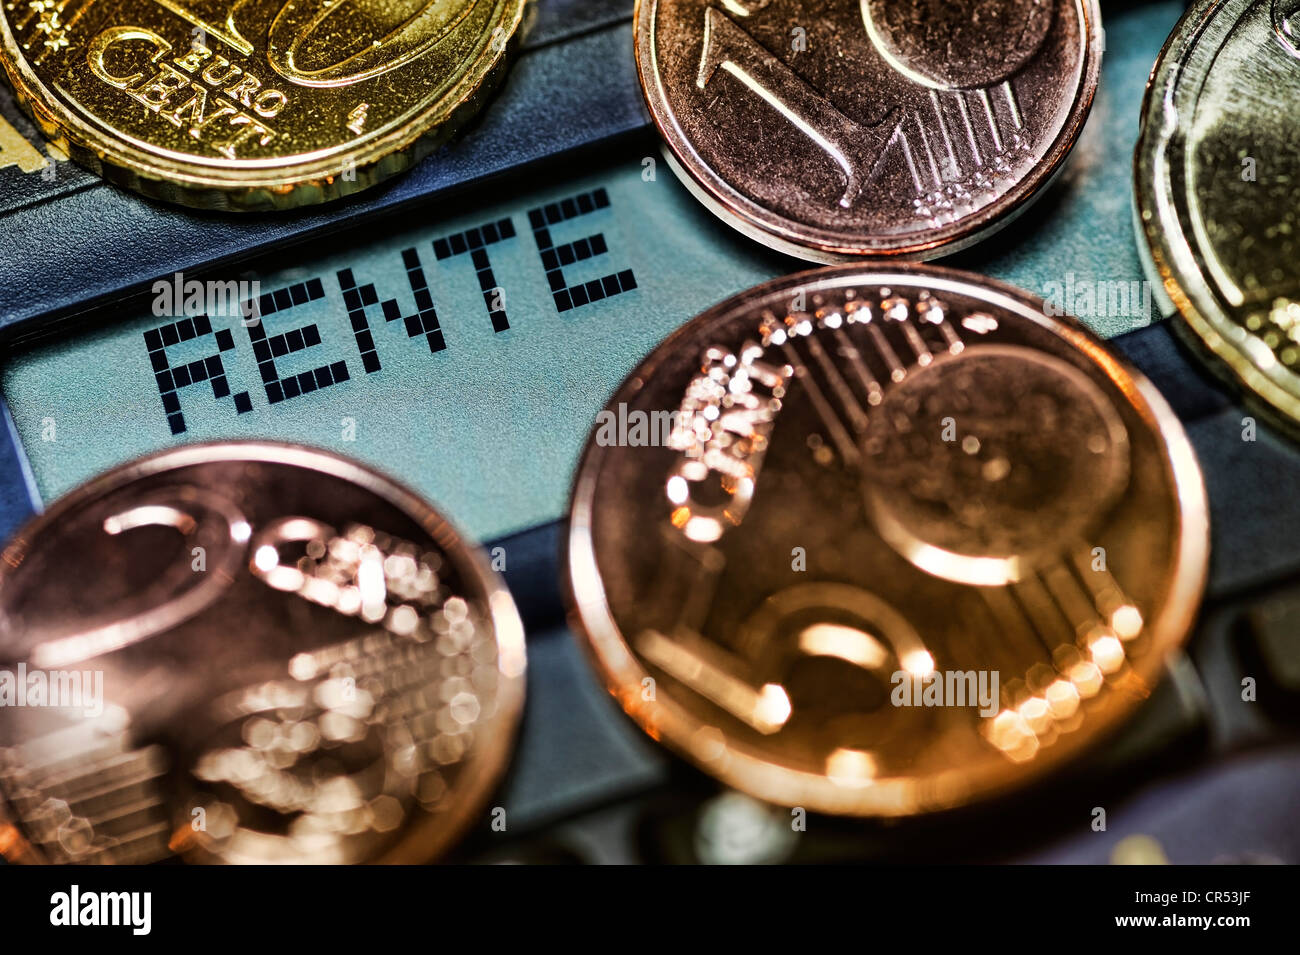 Lettering 'Rente', German for 'pension' on a calculator and coins, symbolic image for low pensions - Stock Image